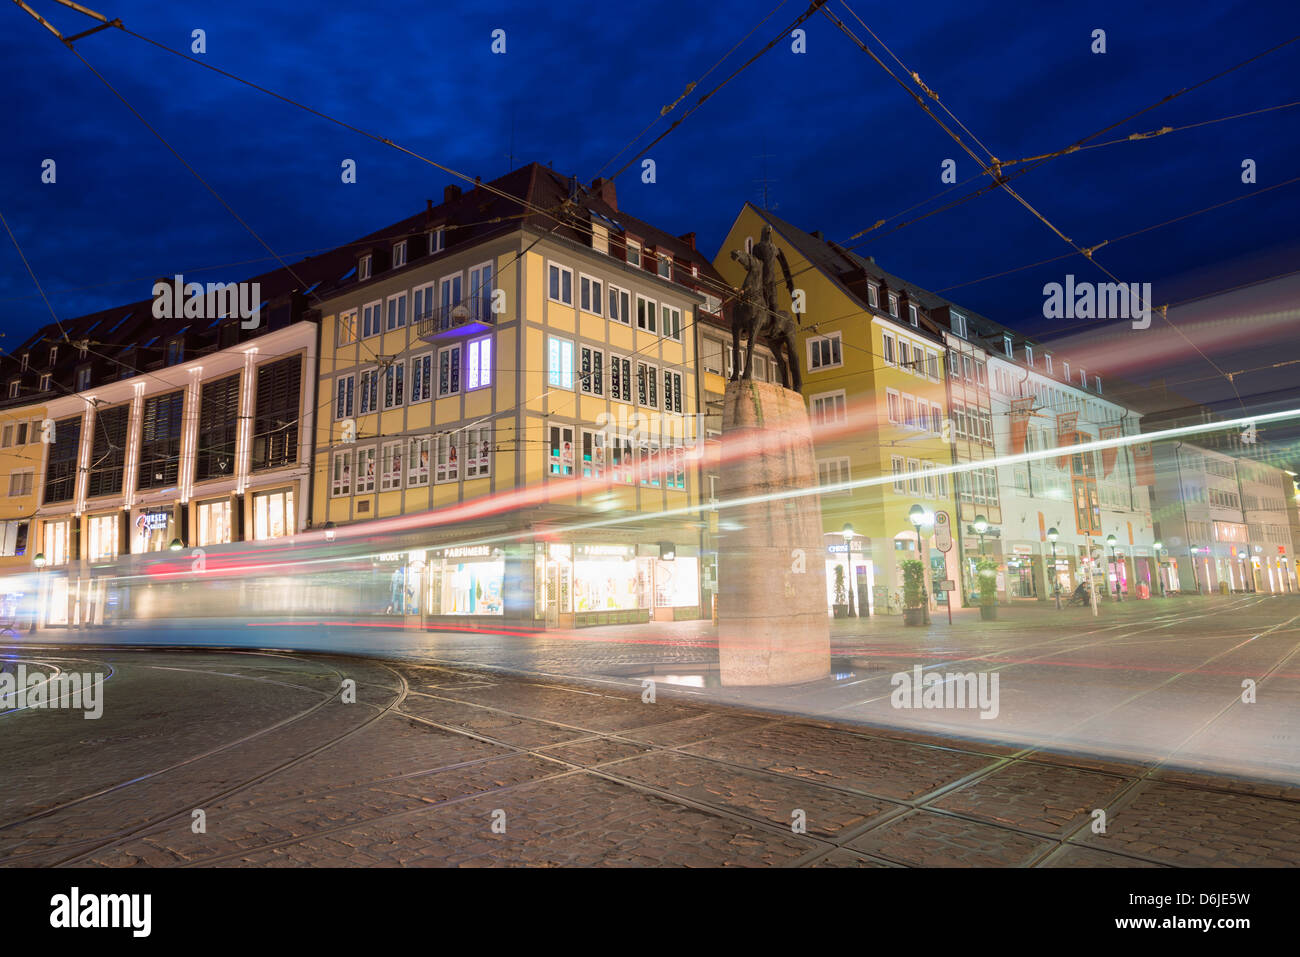 Tram in old town Freiburg, Baden-Wurttemberg, Germany, Europe - Stock Image